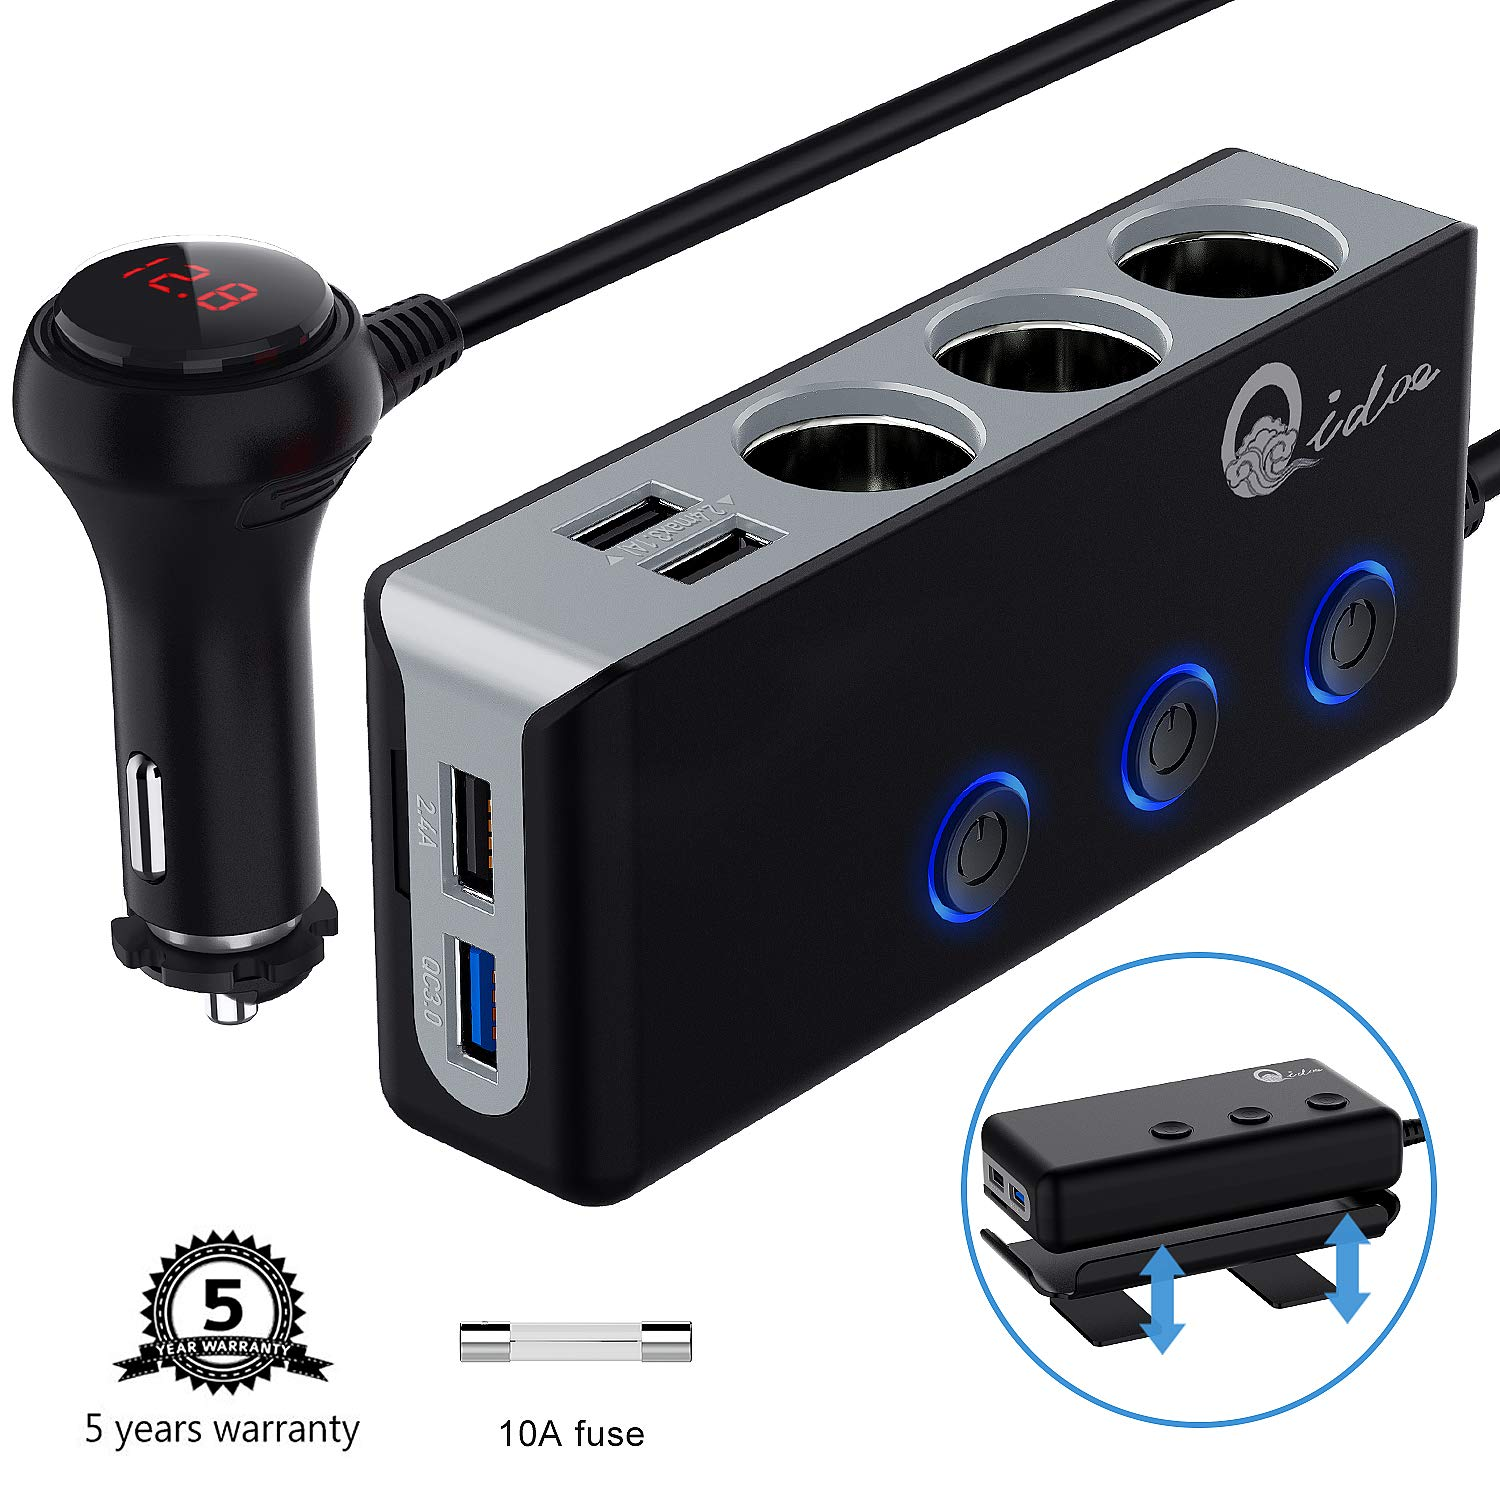 120W Car Charger, Qidoe 12V/24V 3-Socket Cigarette Lighter Splitter Quick Charge 3.0 and Three 2.4A USB Outlet with Voltmeter Power Switch for for GPS, Dash Cam, Sat Nav, Phone, Android, iPad, Tablet by Qidoe